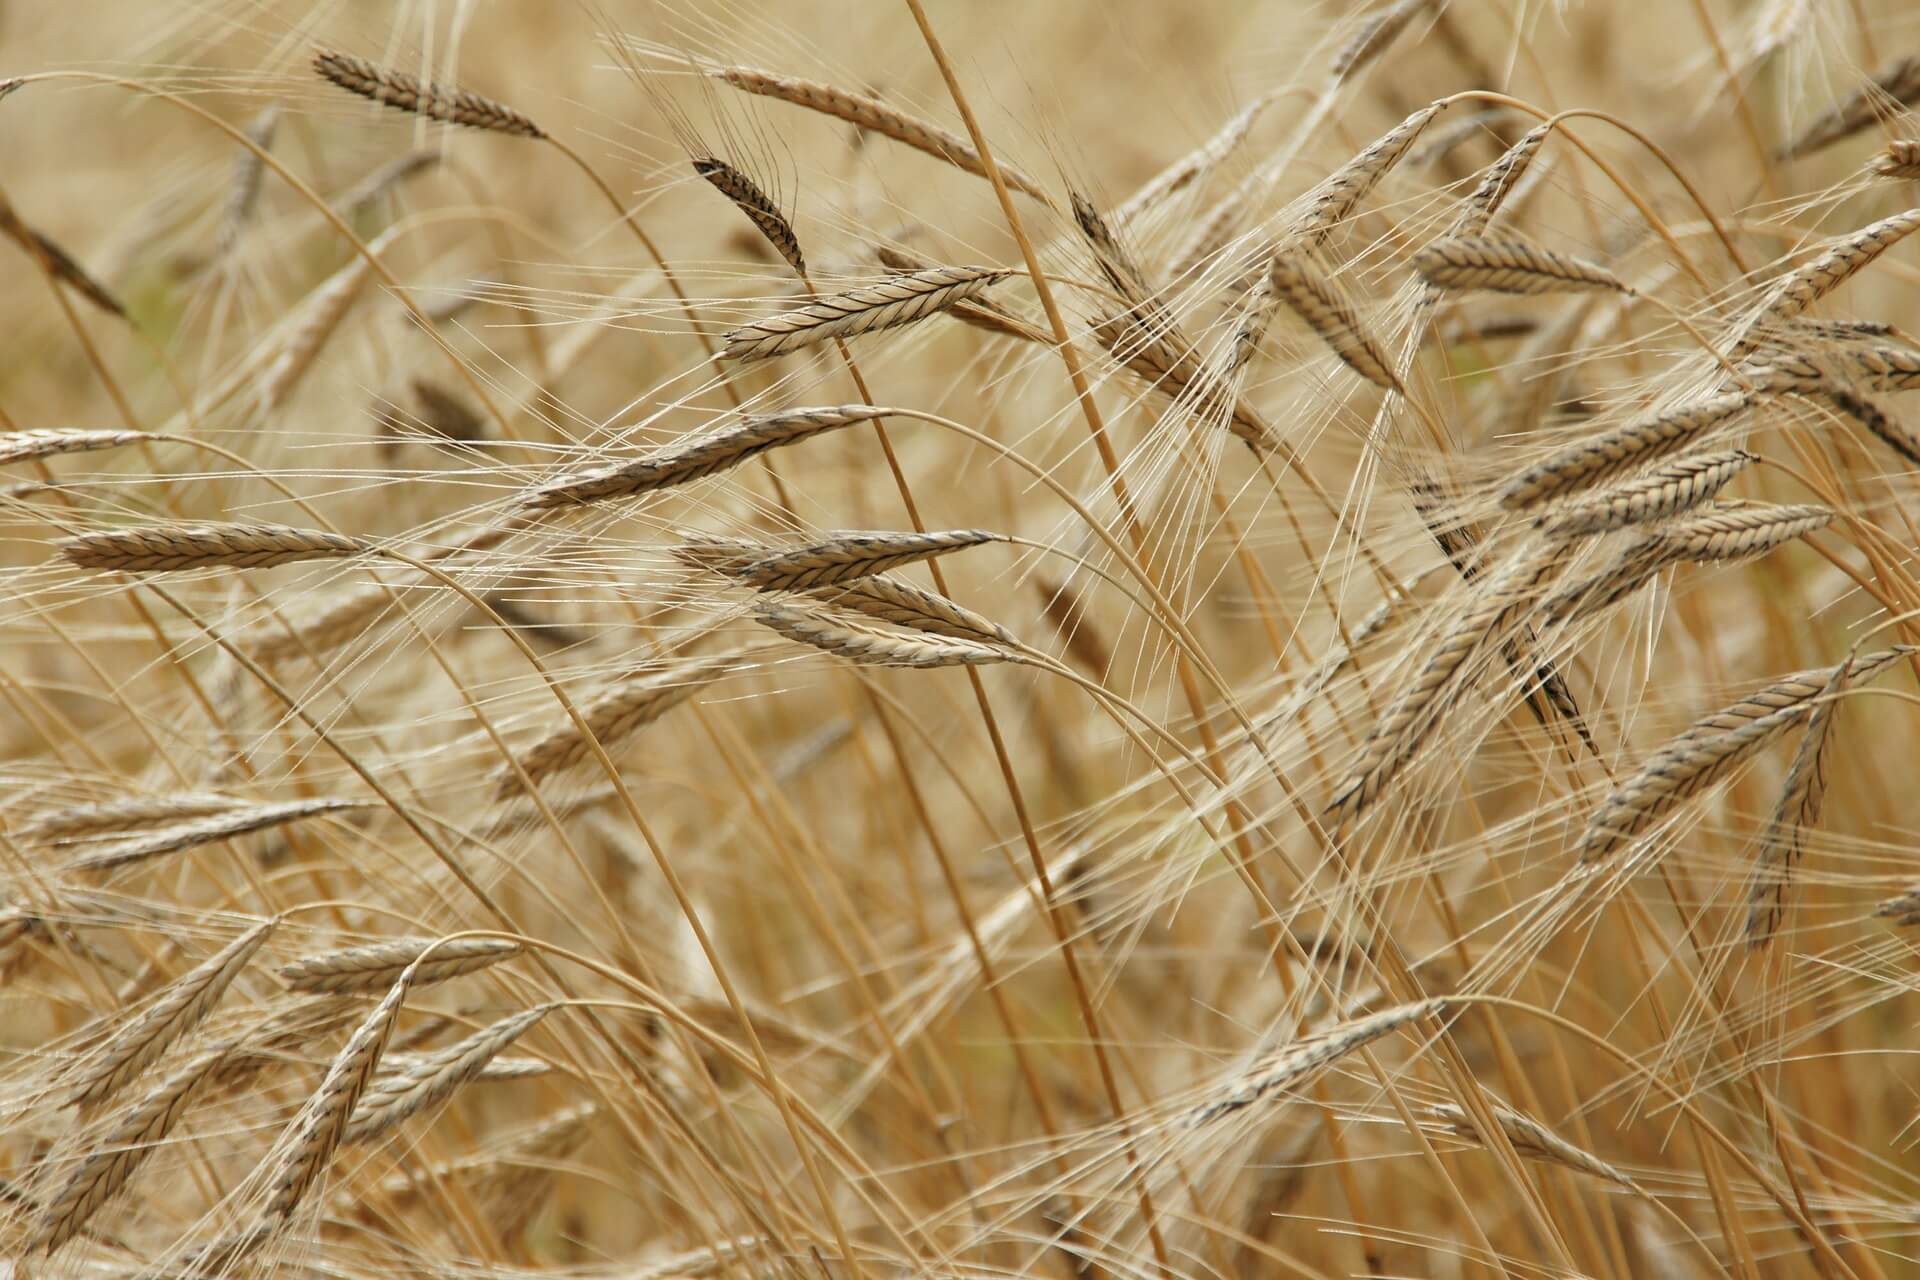 pixabay awns on wheat